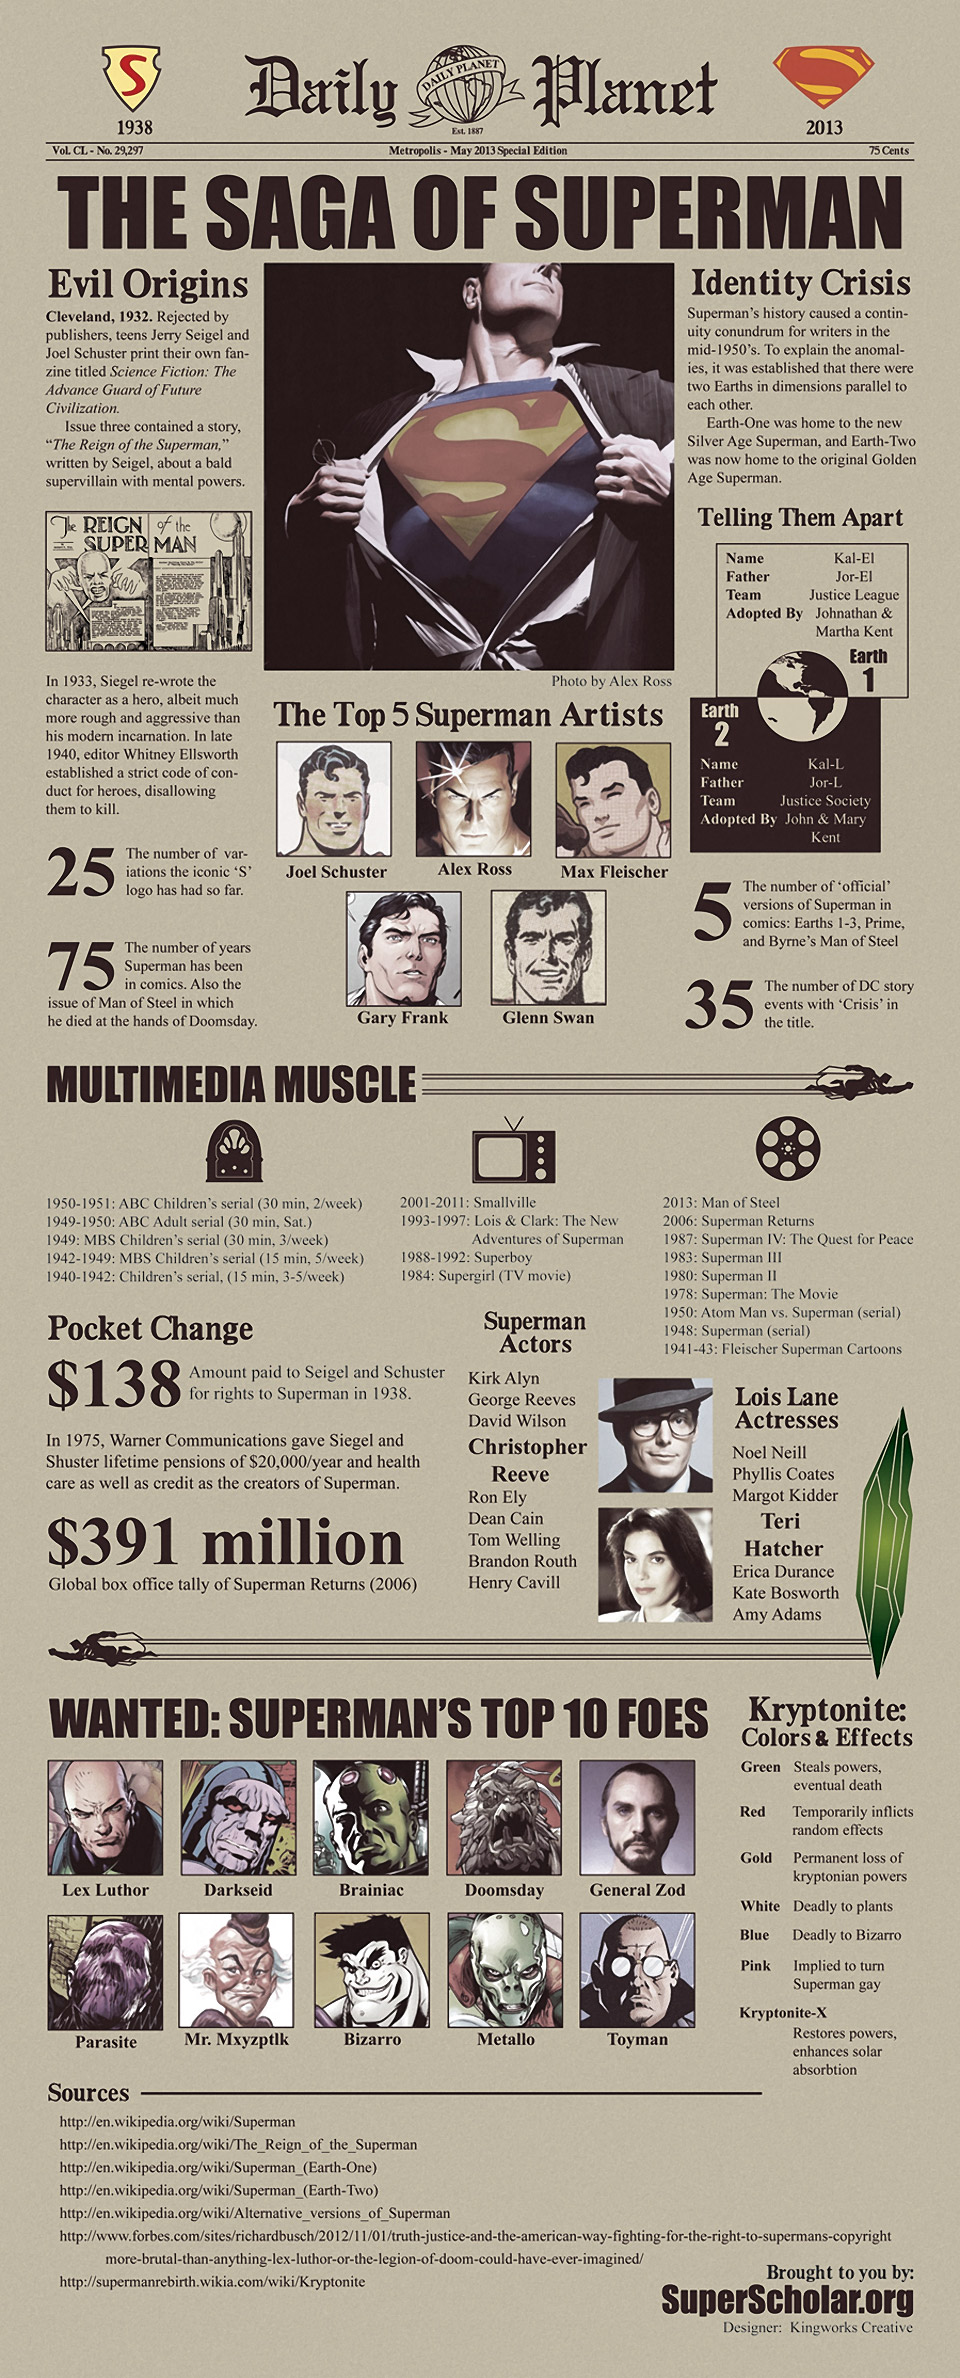 Infographic: The Saga of Superman